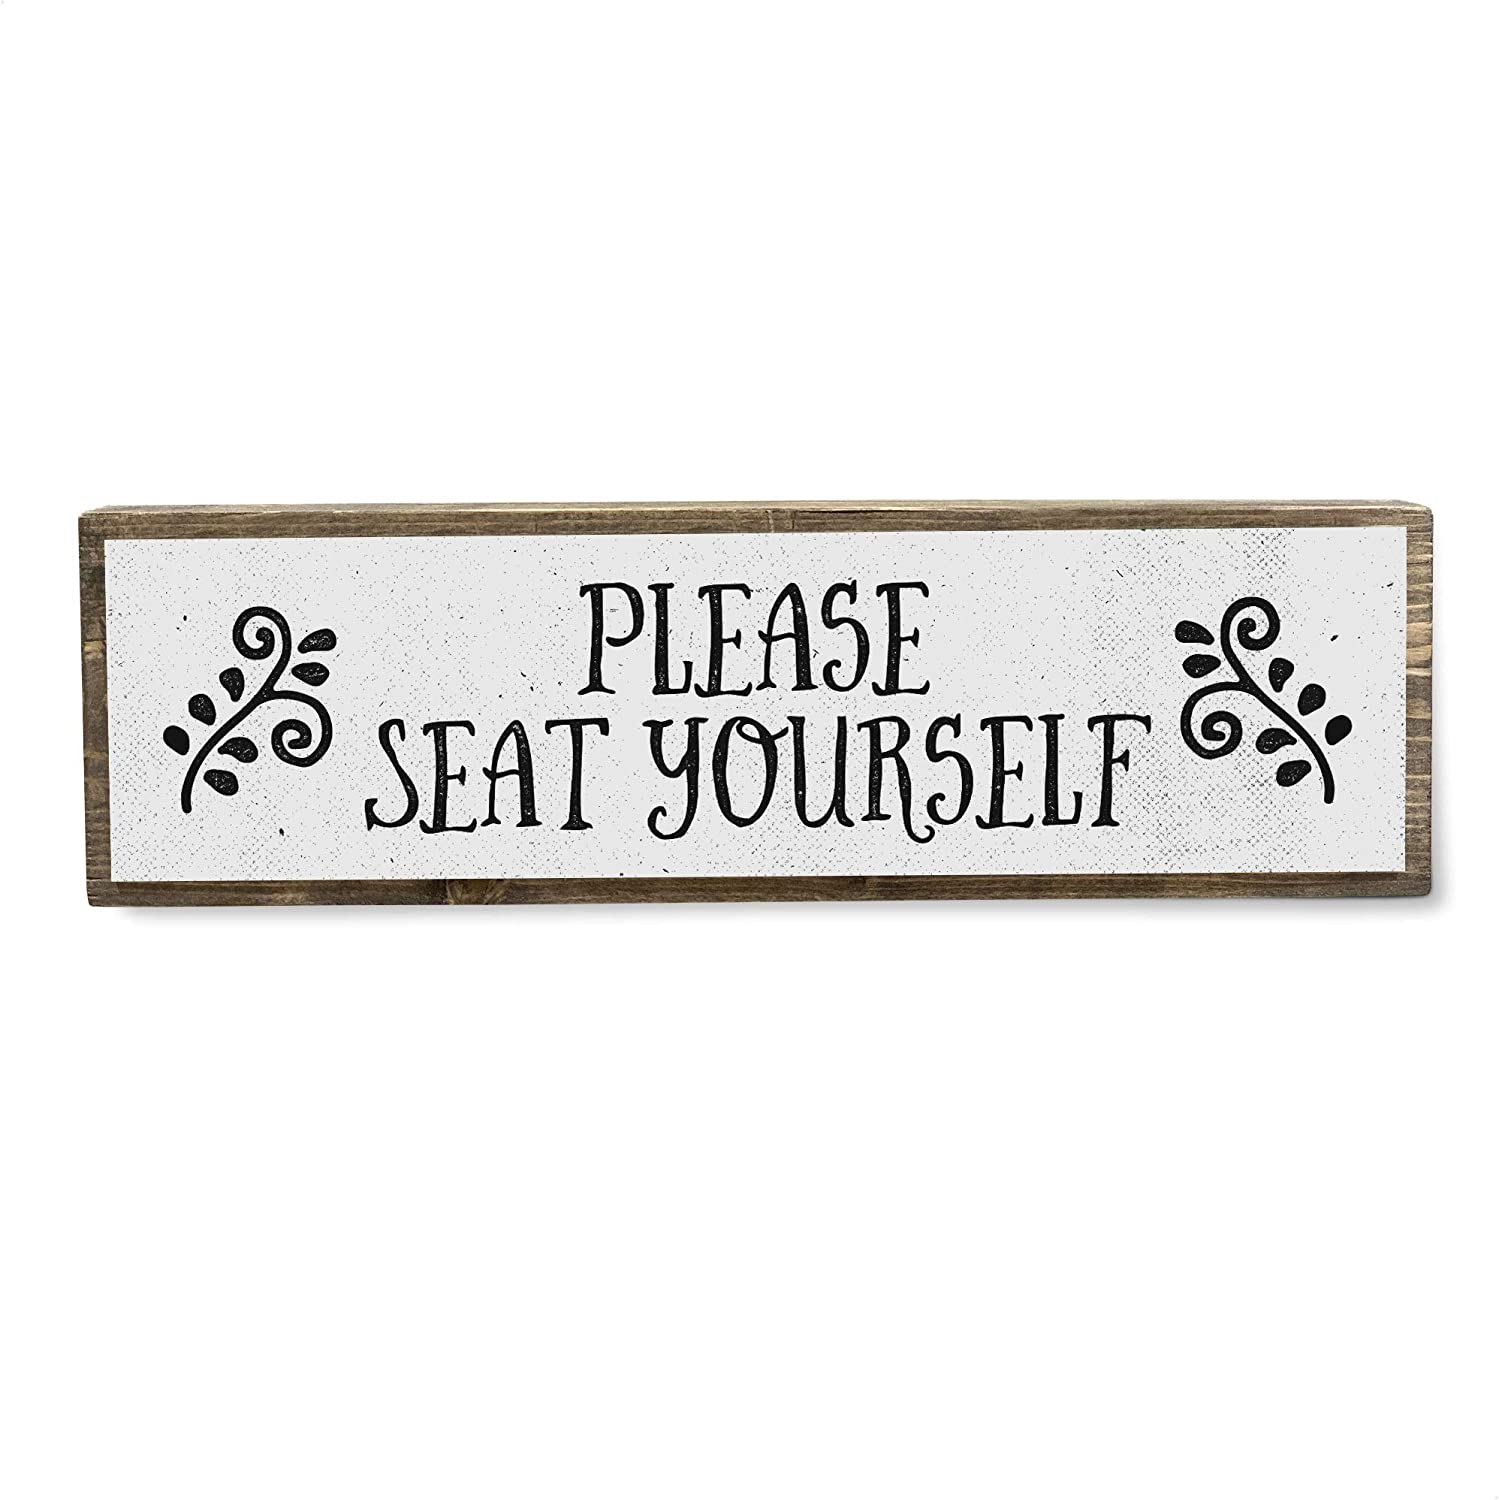 ANVEVO Please Seat Yourself - Metal Wood shop Light Sign Max 86% OFF Cute –